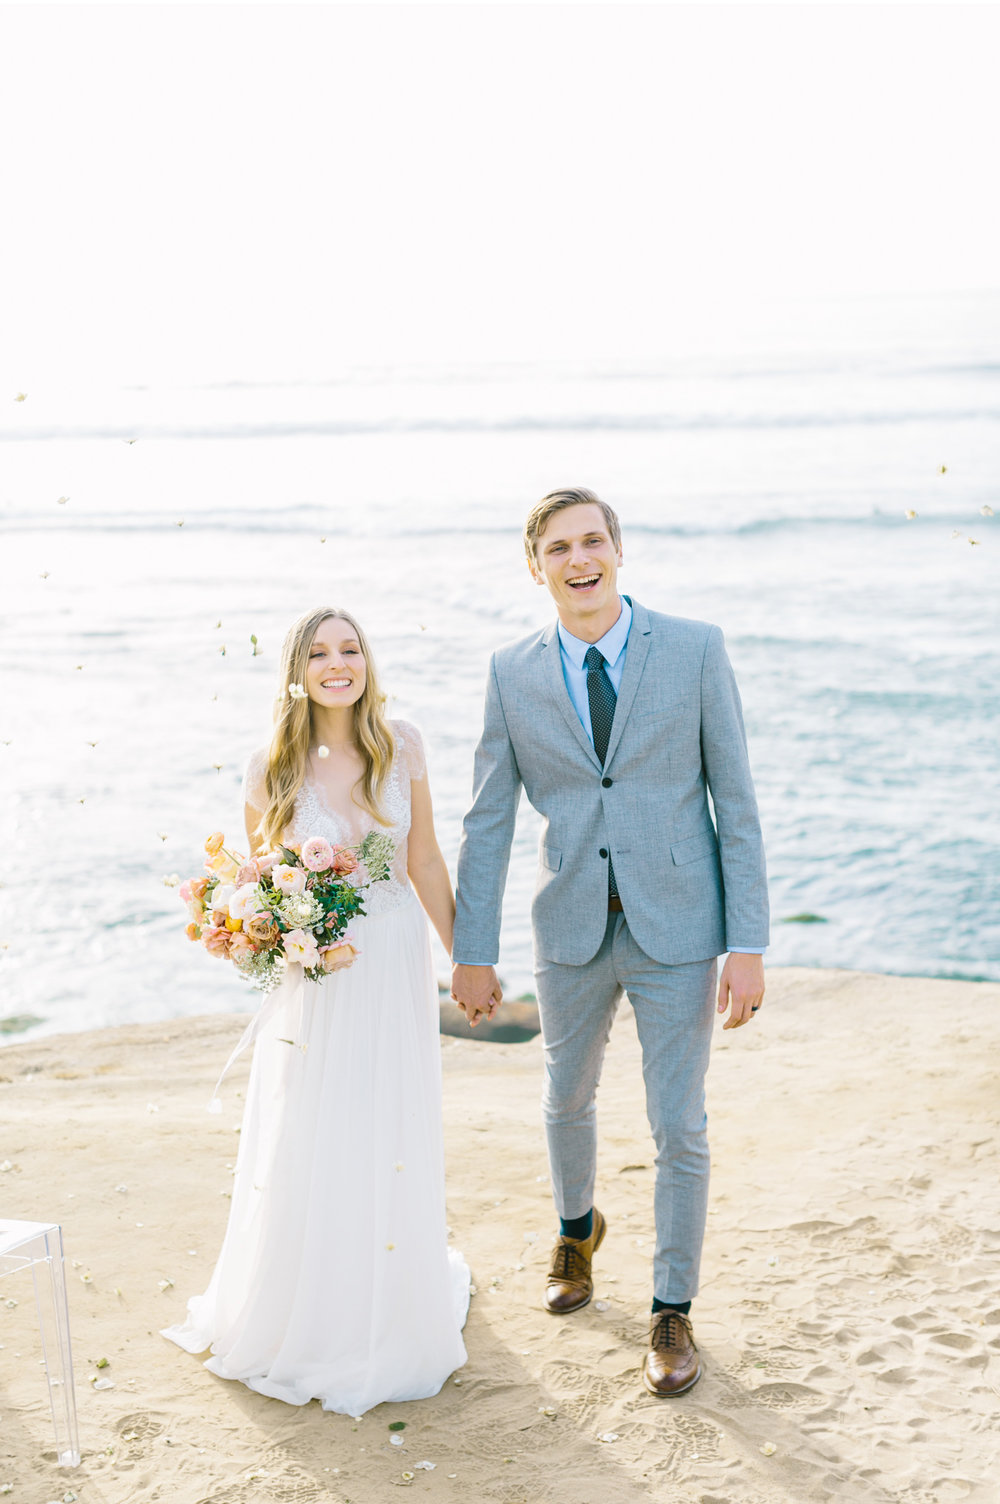 Style-Me-Pretty-California-Beach-Wedding-Natalie-Schutt-Photography_01.jpg